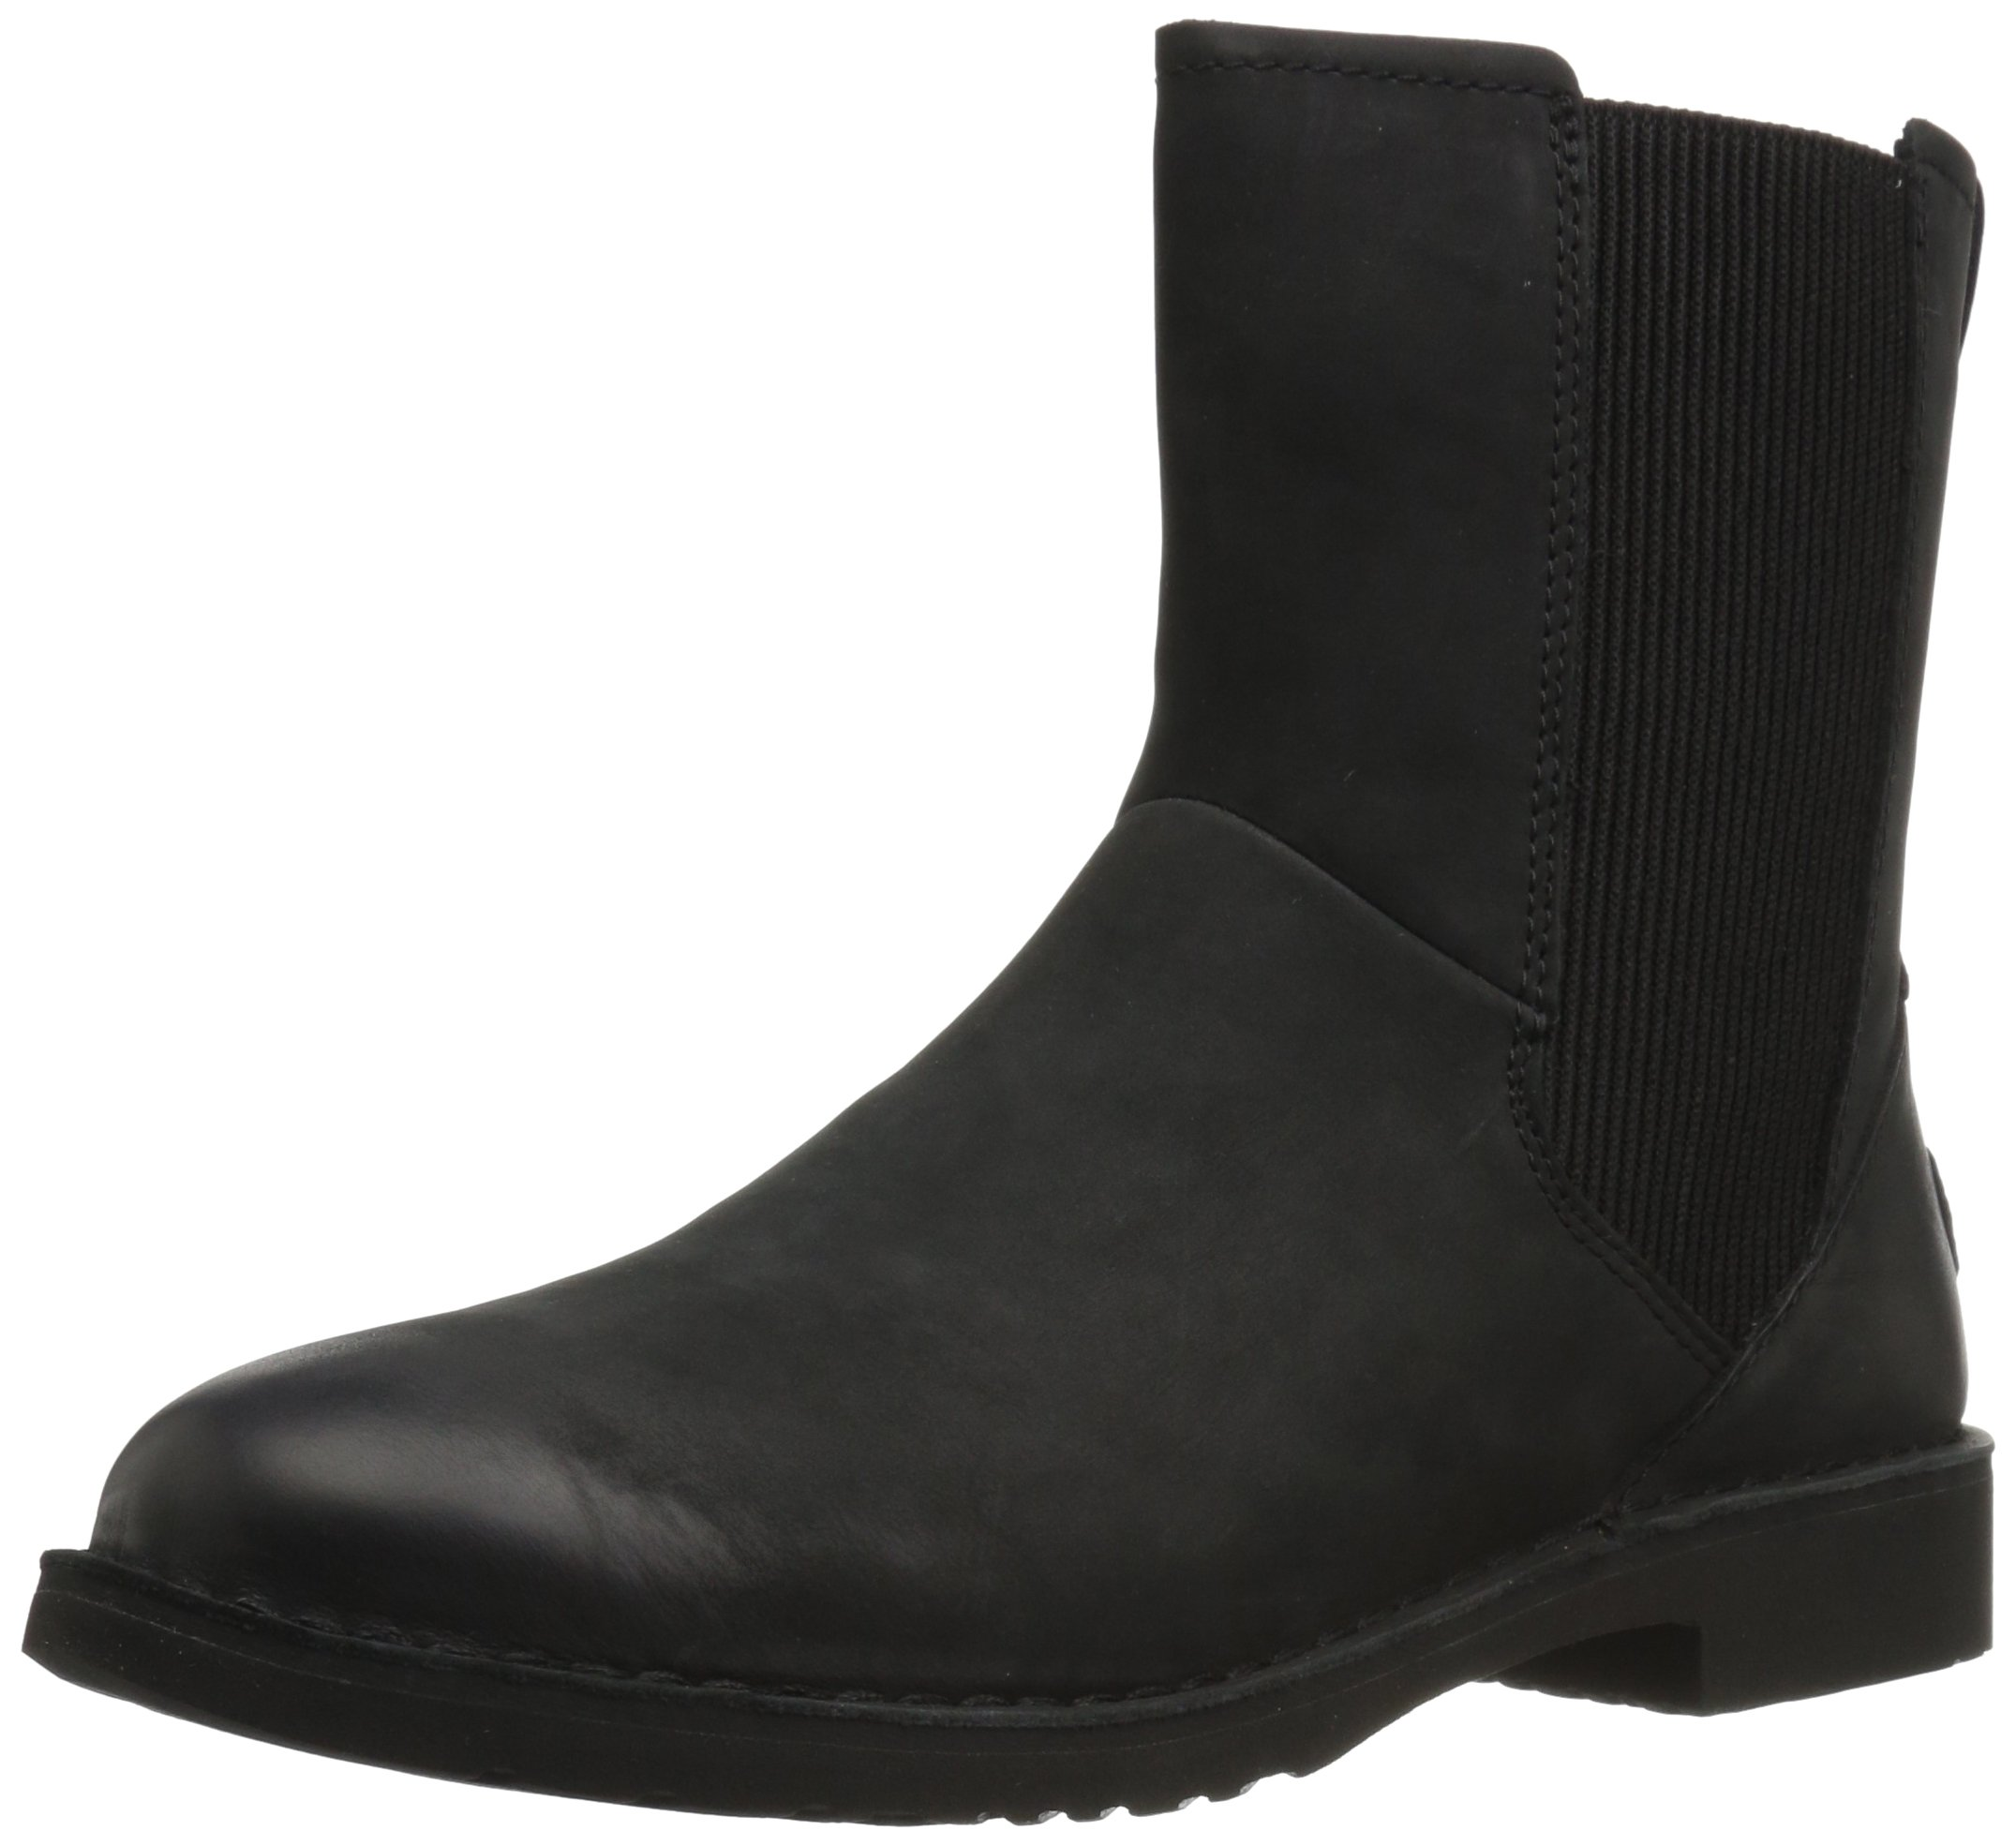 UGG Women's Larra Snow Boot, Black, 8 M US